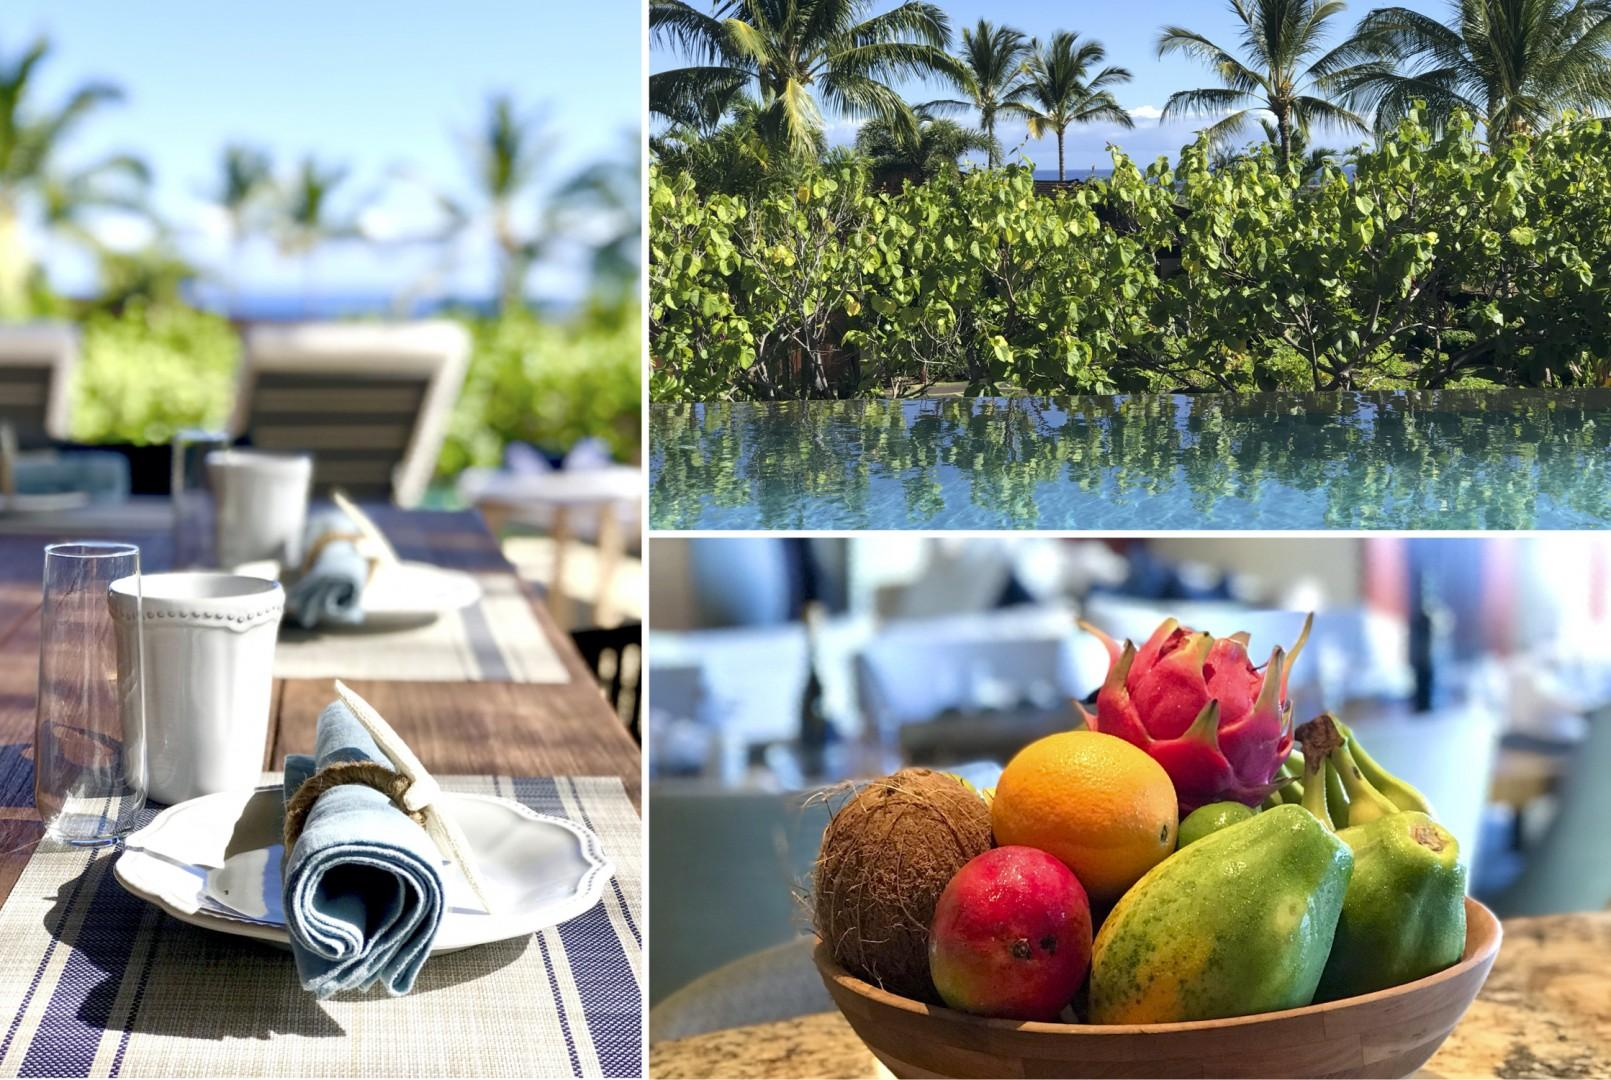 High end touches and tropical surroundings offer guests blissful serenity.